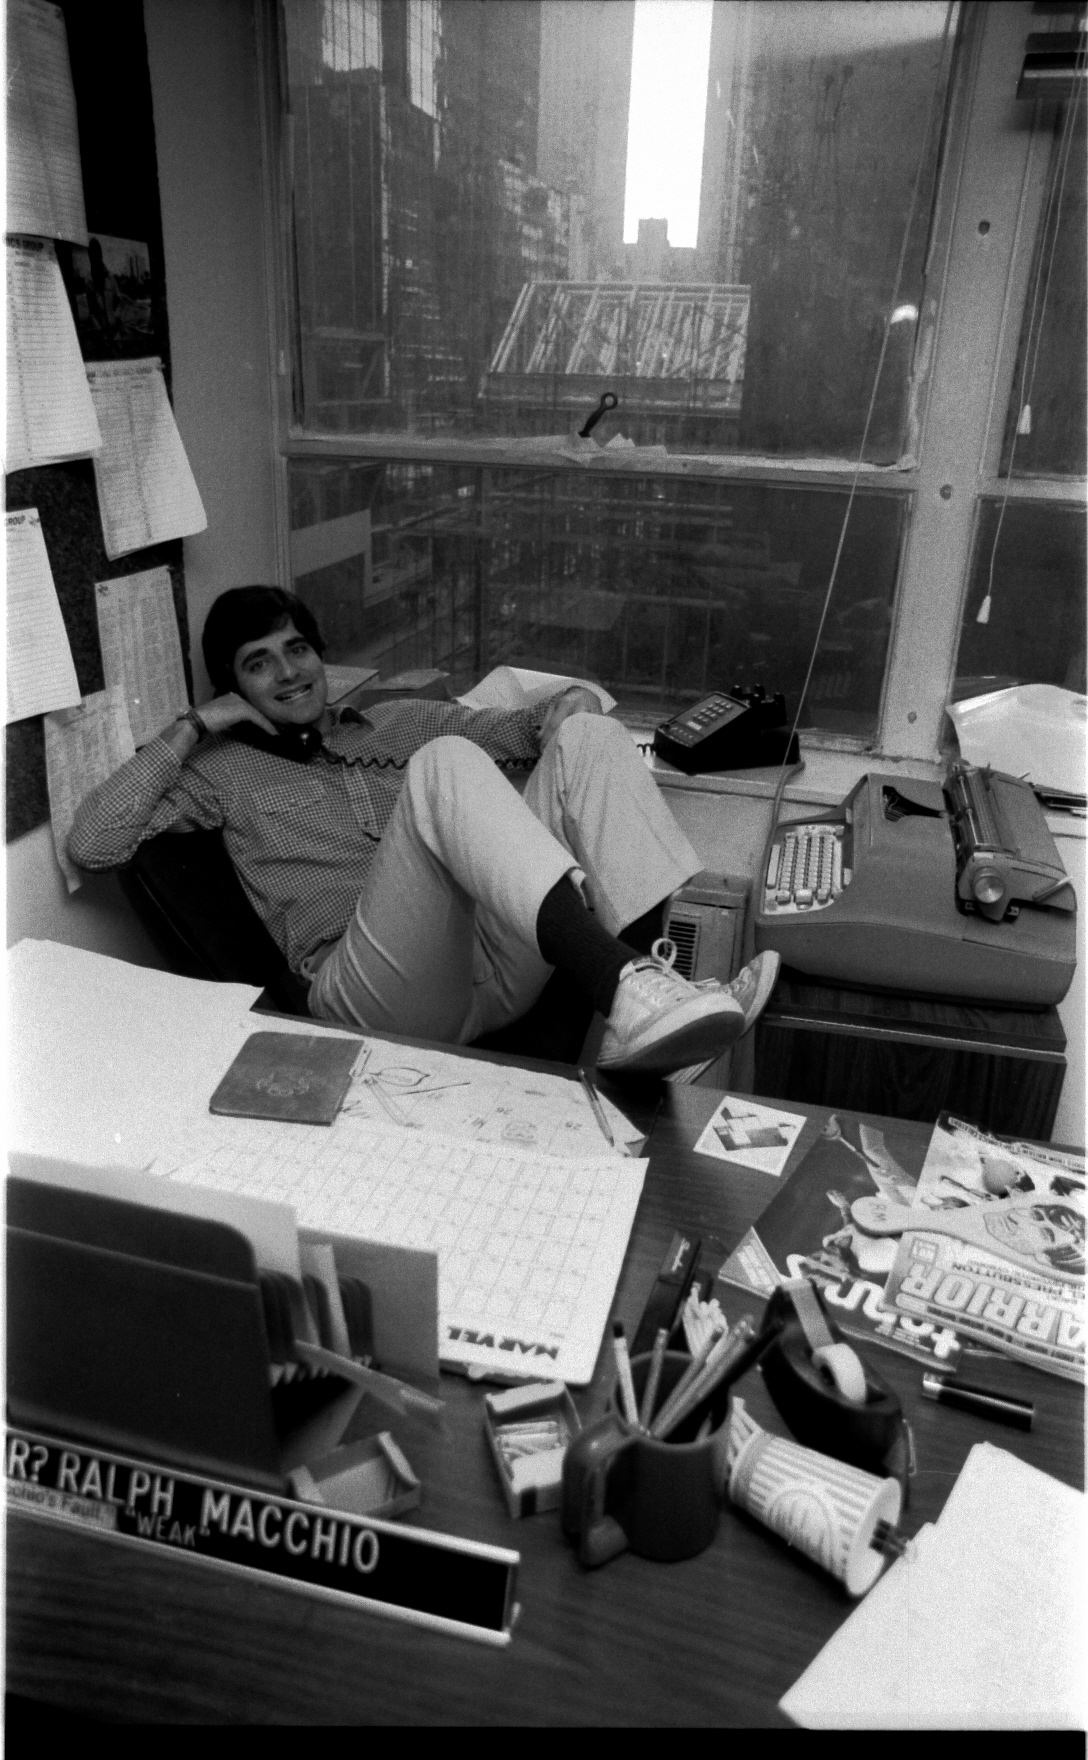 Ralph Macchio in a very typical pose. Ralph has an original Selectric typewriter in front of him, that never left him! Ralph refuses-- to this day-- to step up to any writing device more modern.